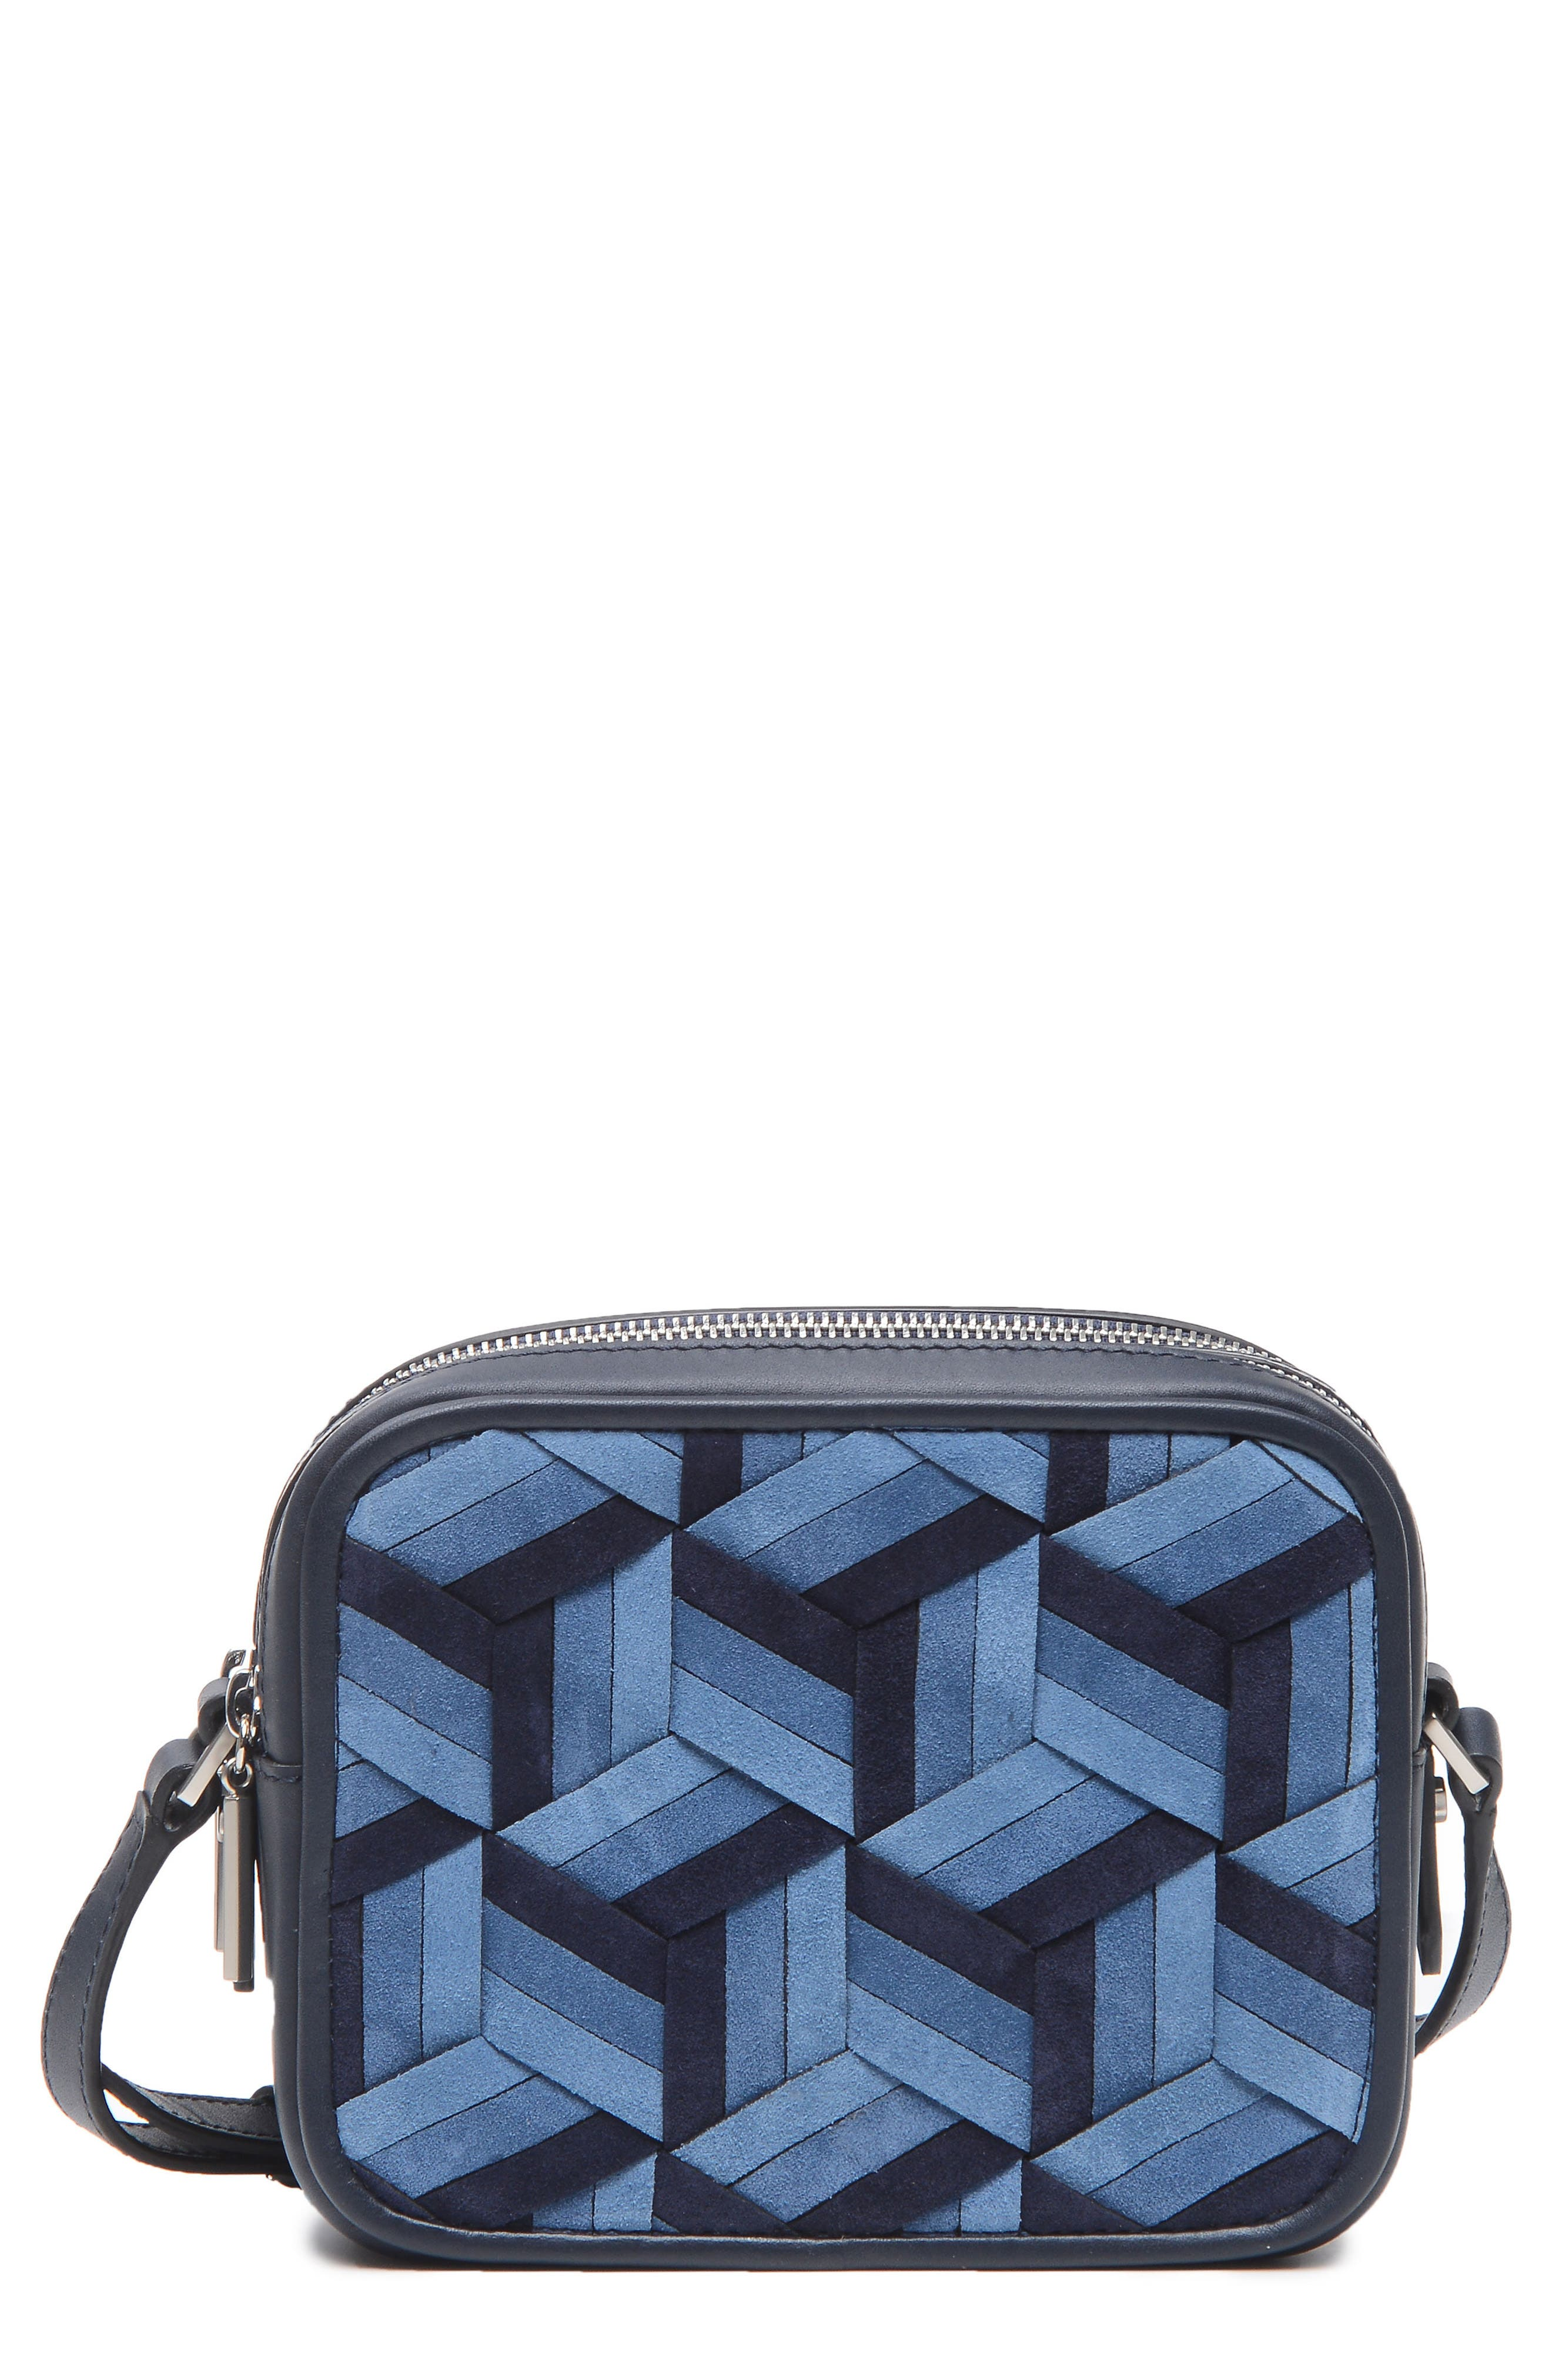 WELDEN EXPLORER WOVEN LEATHER CAMERA BAG - BLUE